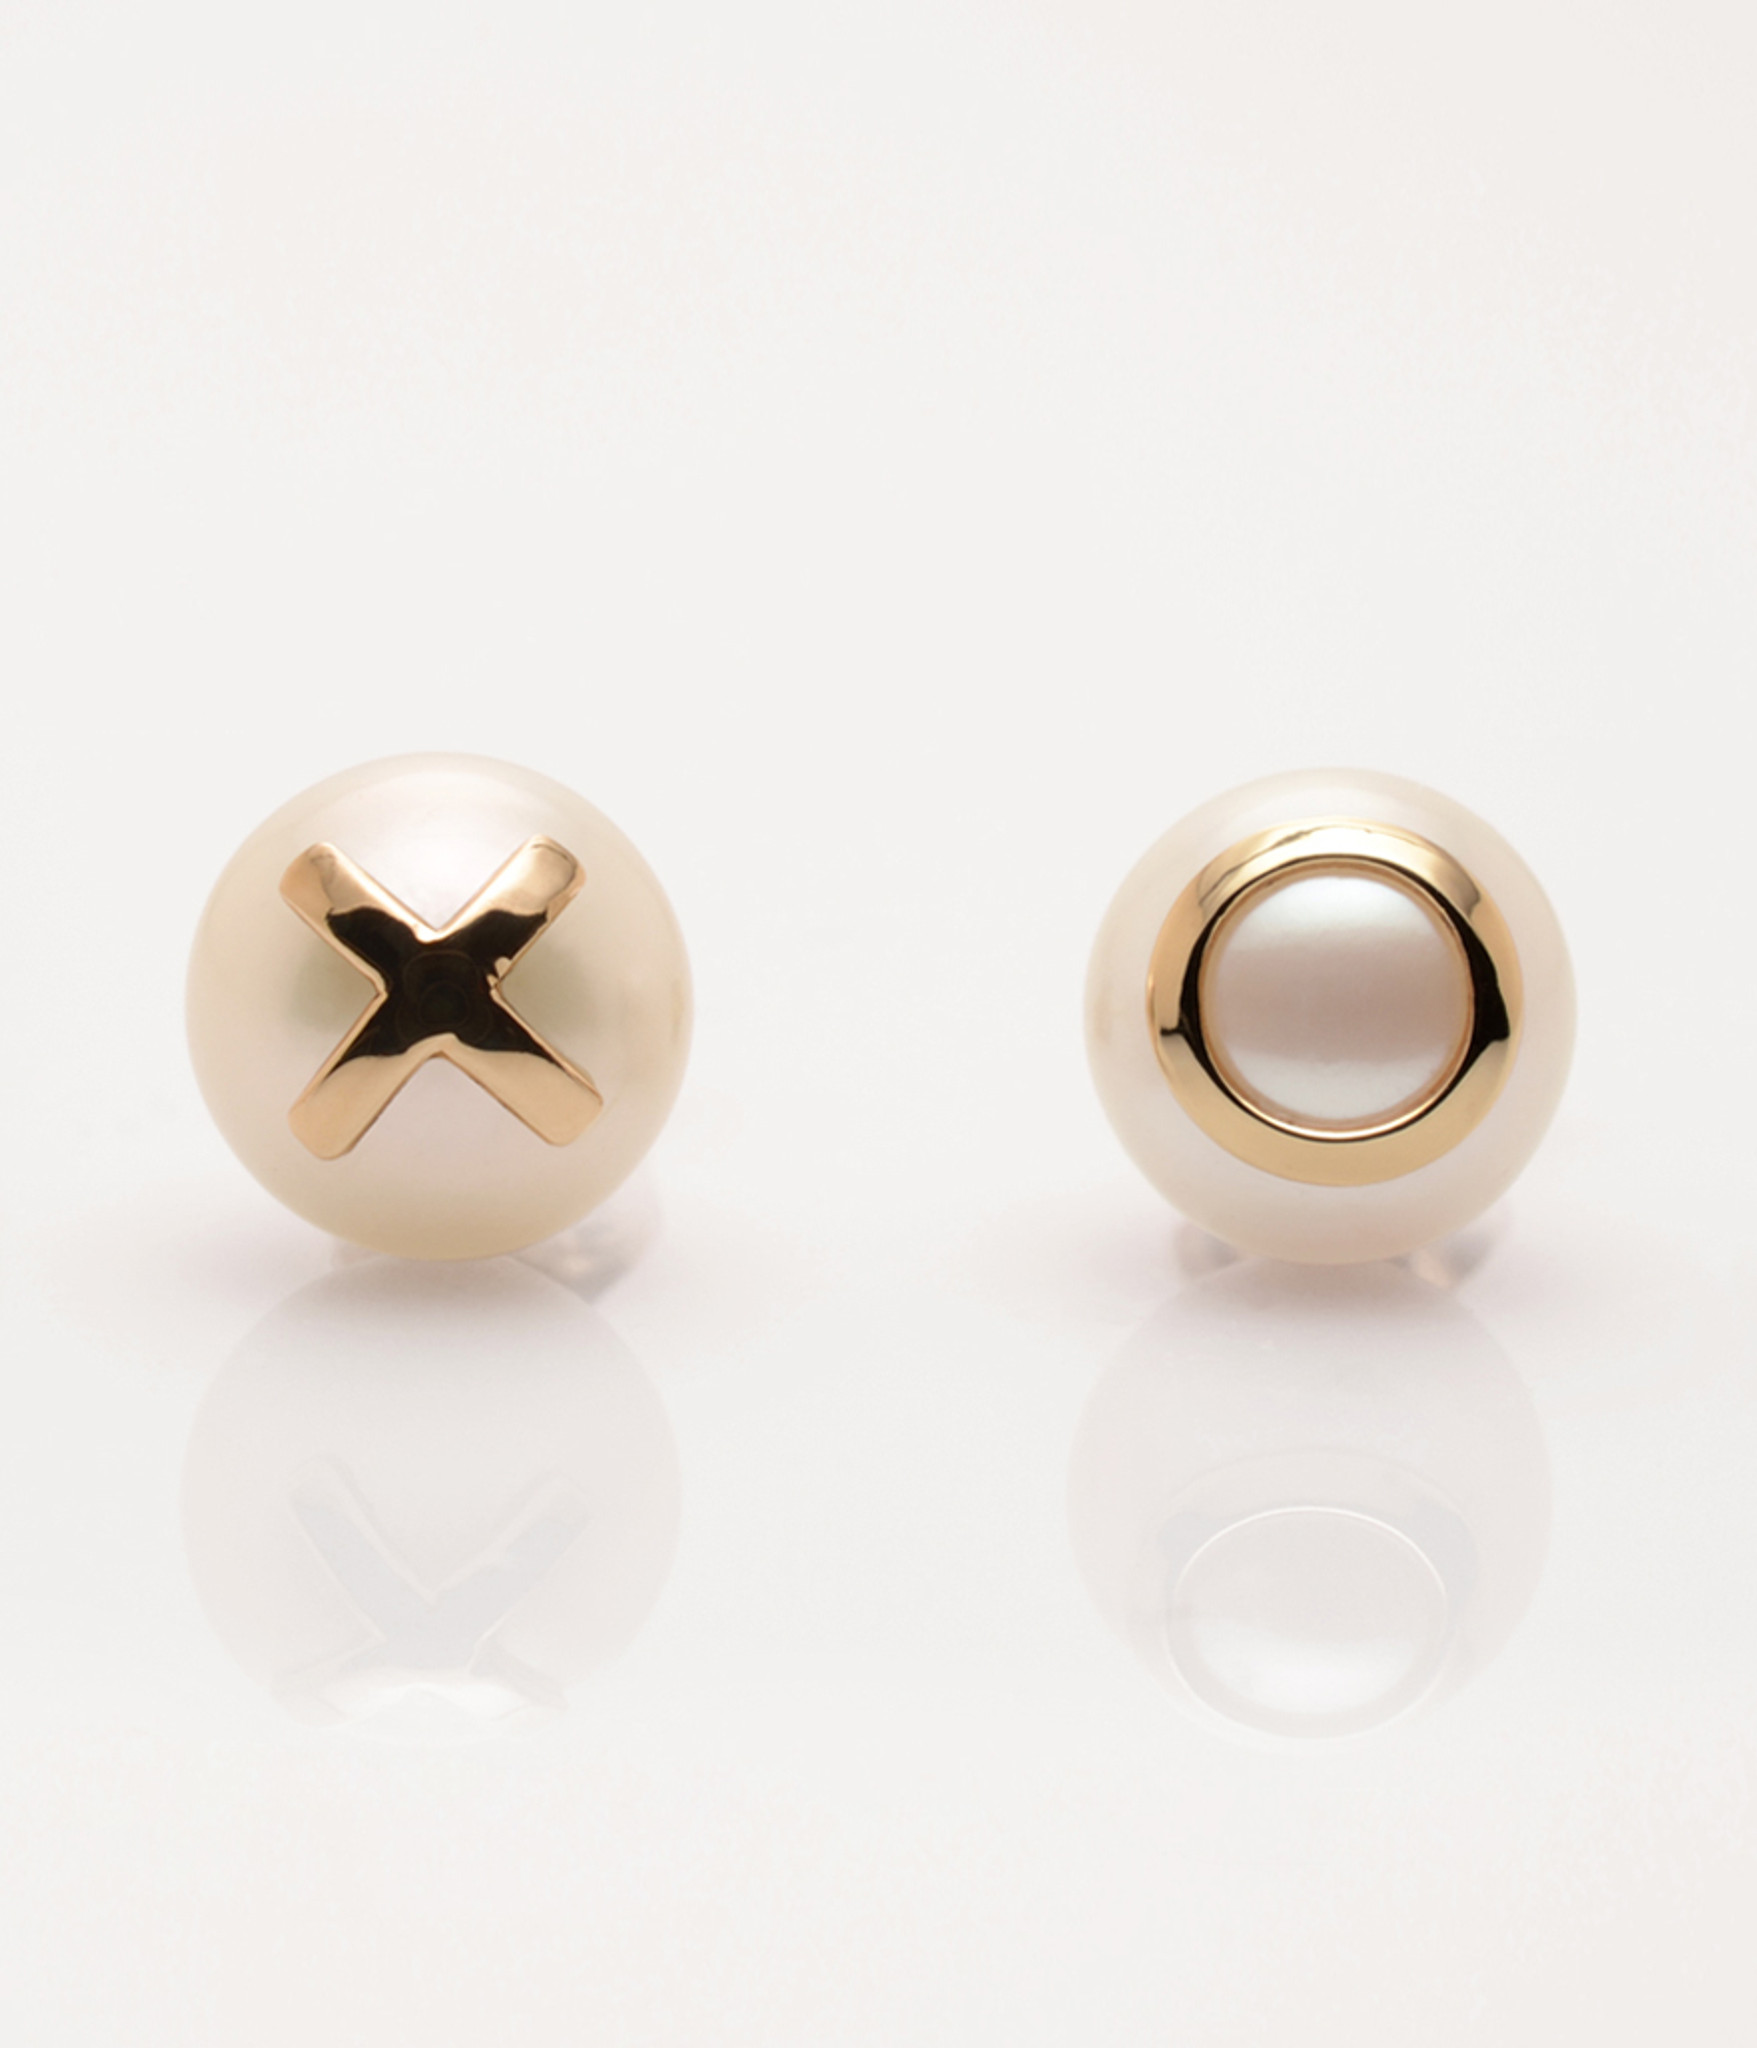 Front view of Cultured Freshwater Pearl Earrings with 14k Gold XO Emoji (8-9 mm) by Nektar De Stagni